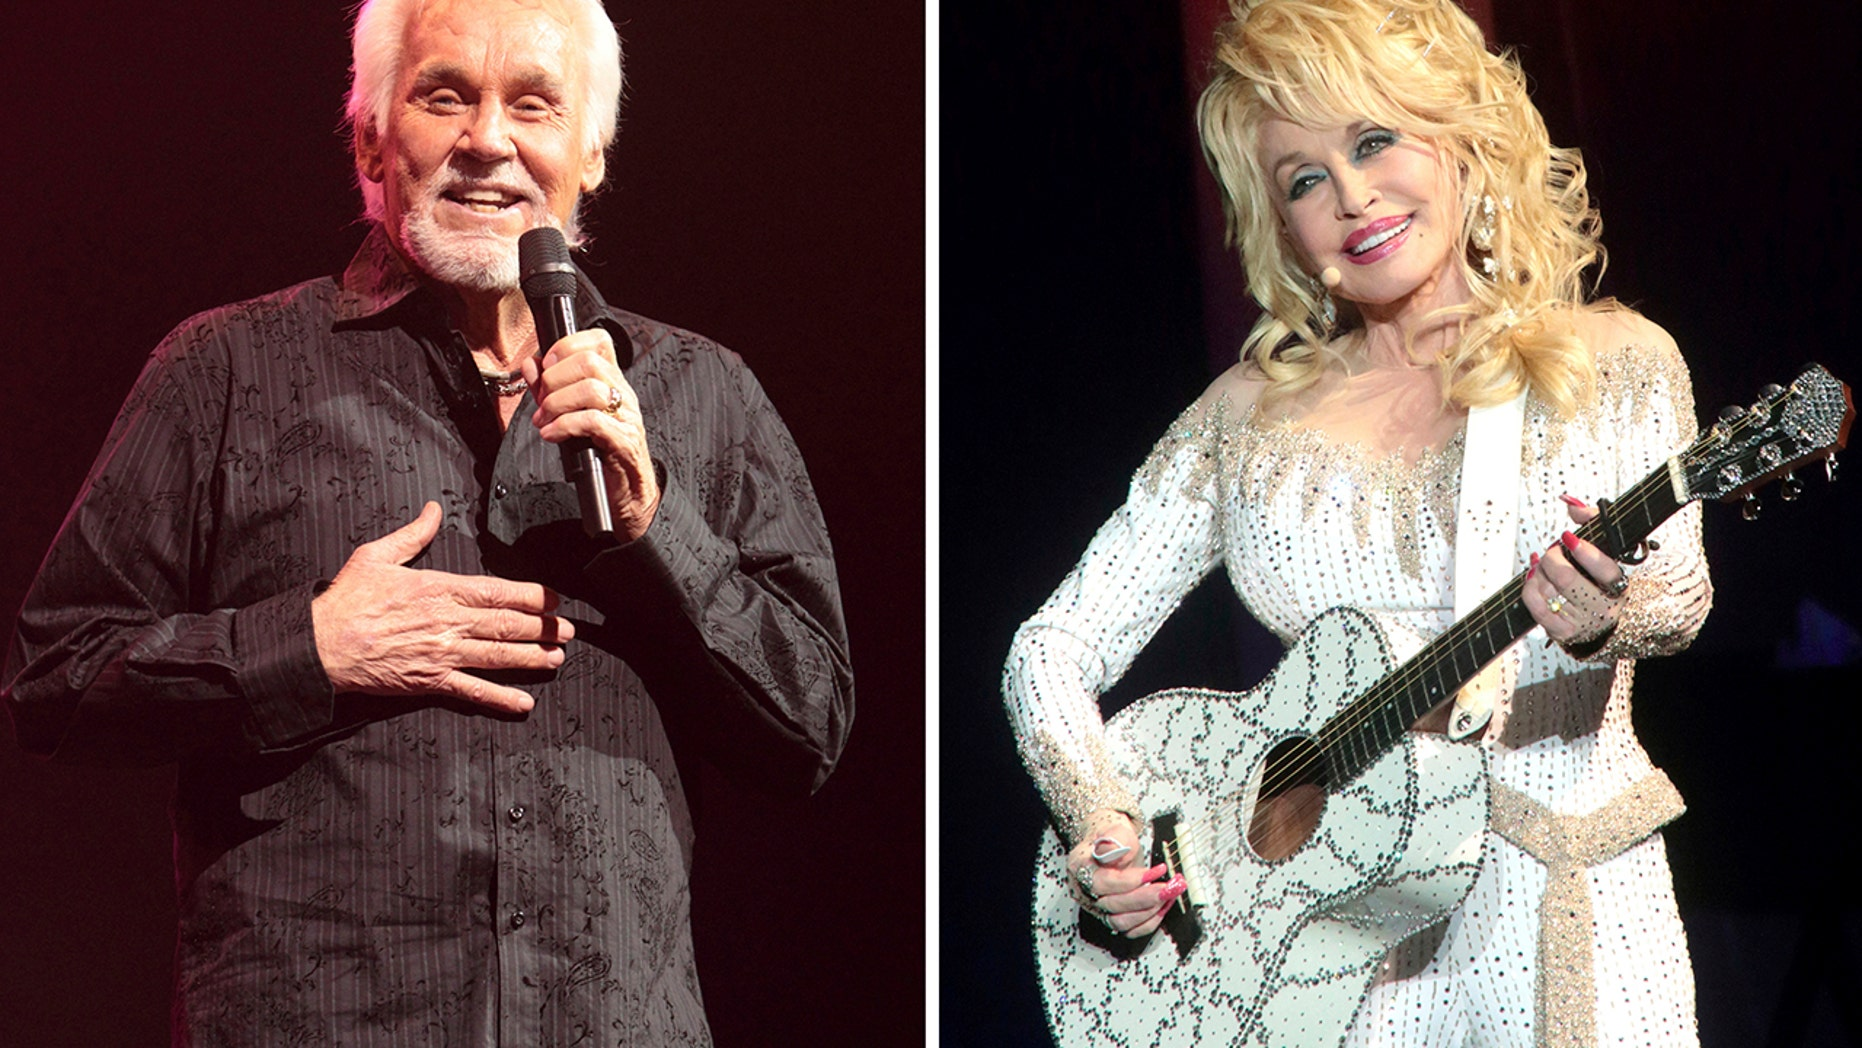 Kenny Rogers, Dolly Parton to sing together one final time | Fox News